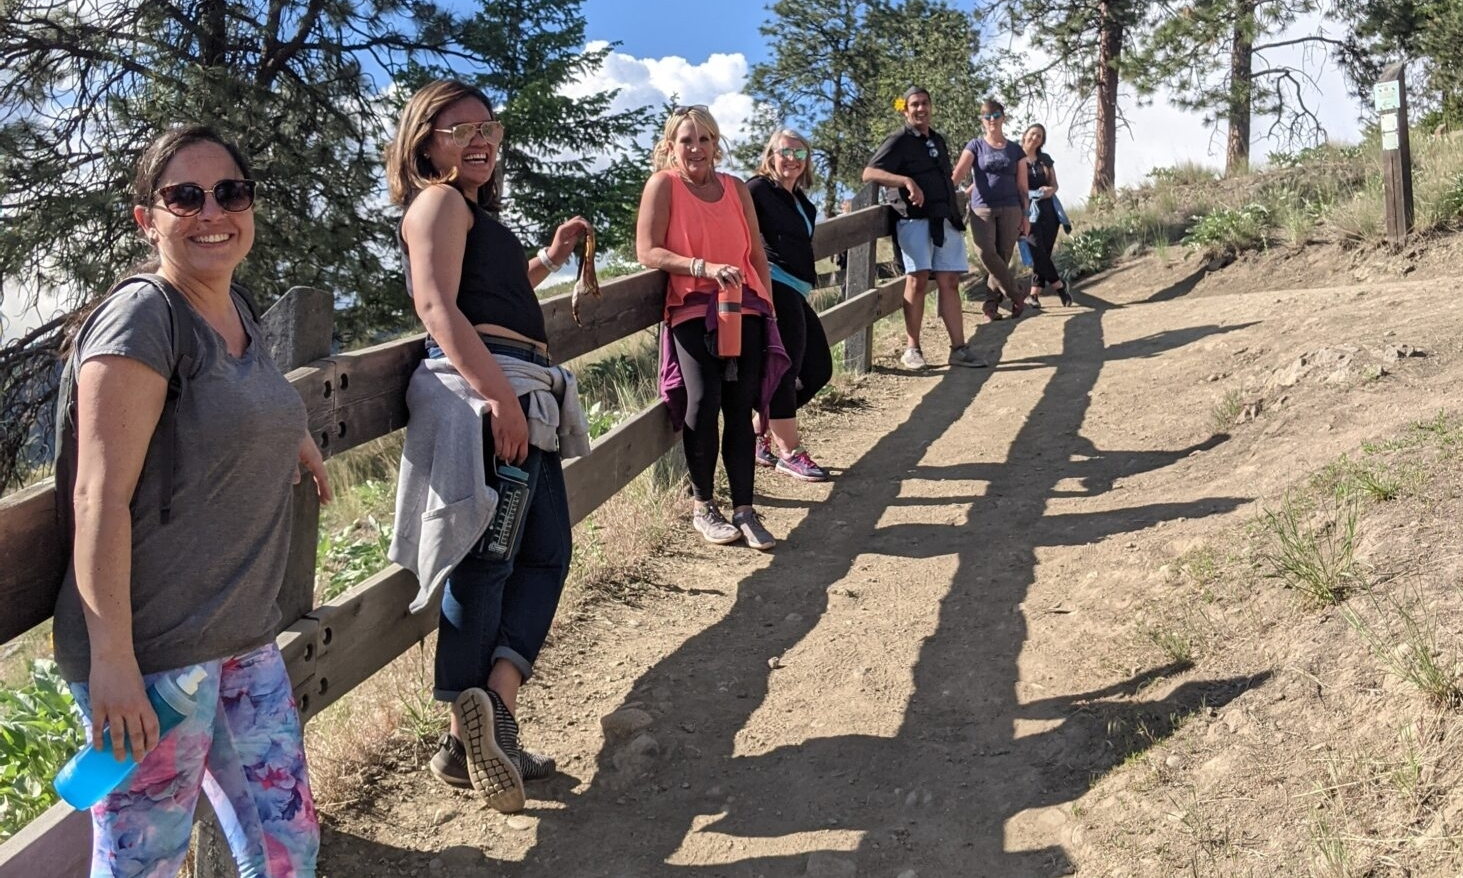 7 people face the camera while leaning on a fence along an uphill outdoor trail.